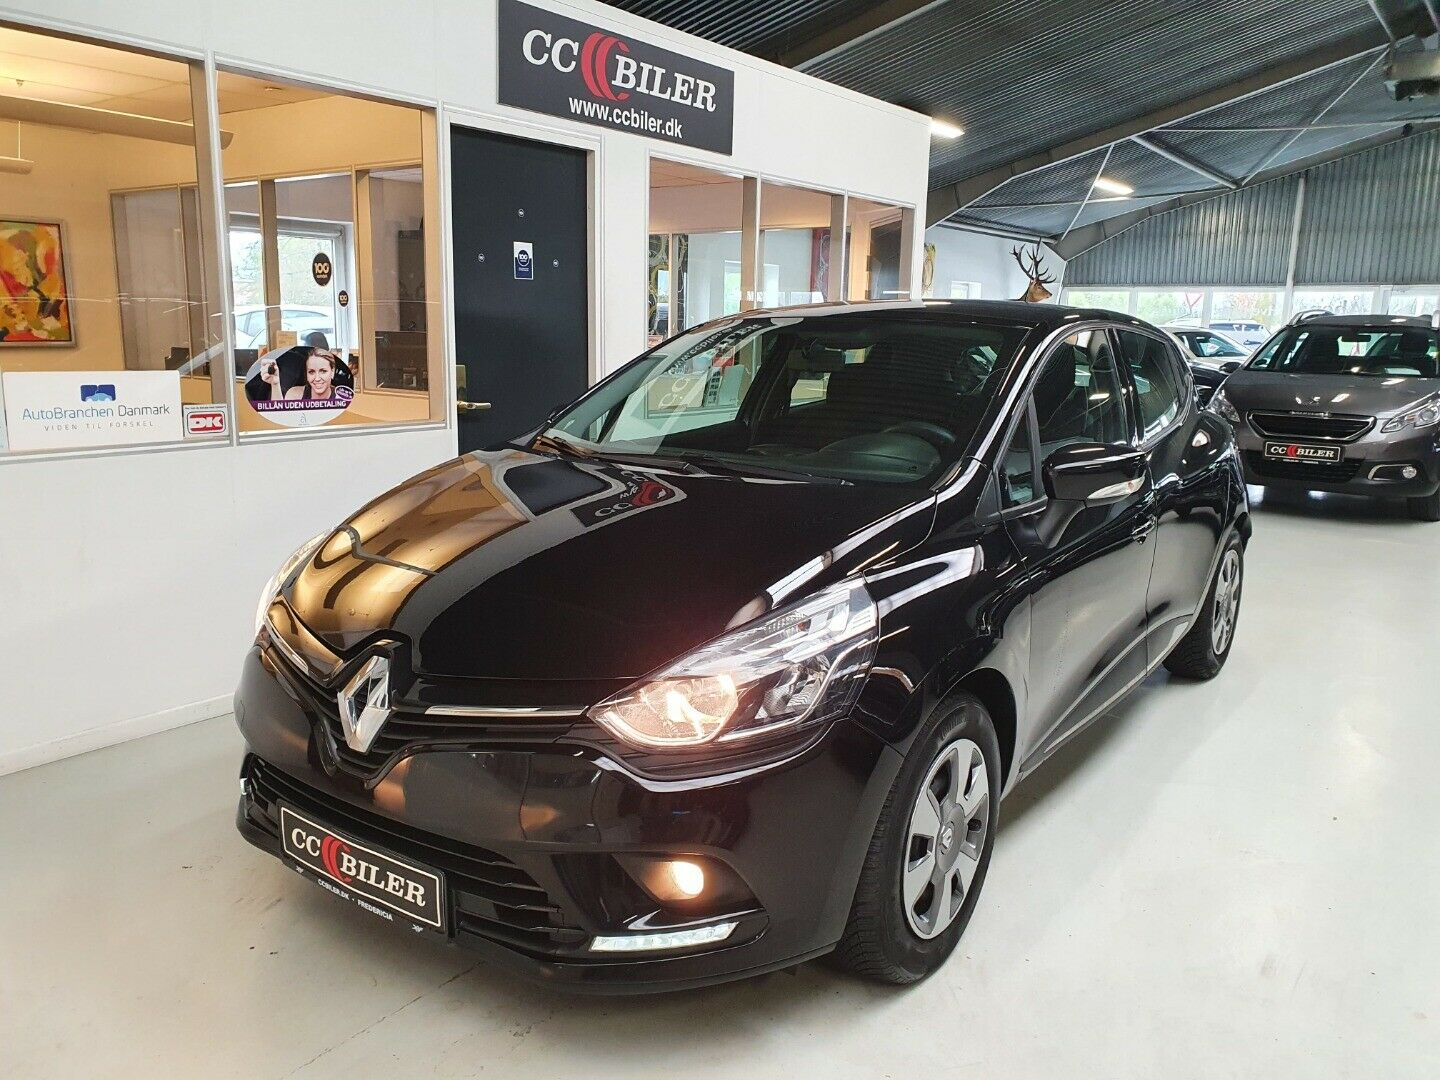 Renault Clio IV 0,9 TCe 90 Limited 5d - 84.900 kr.